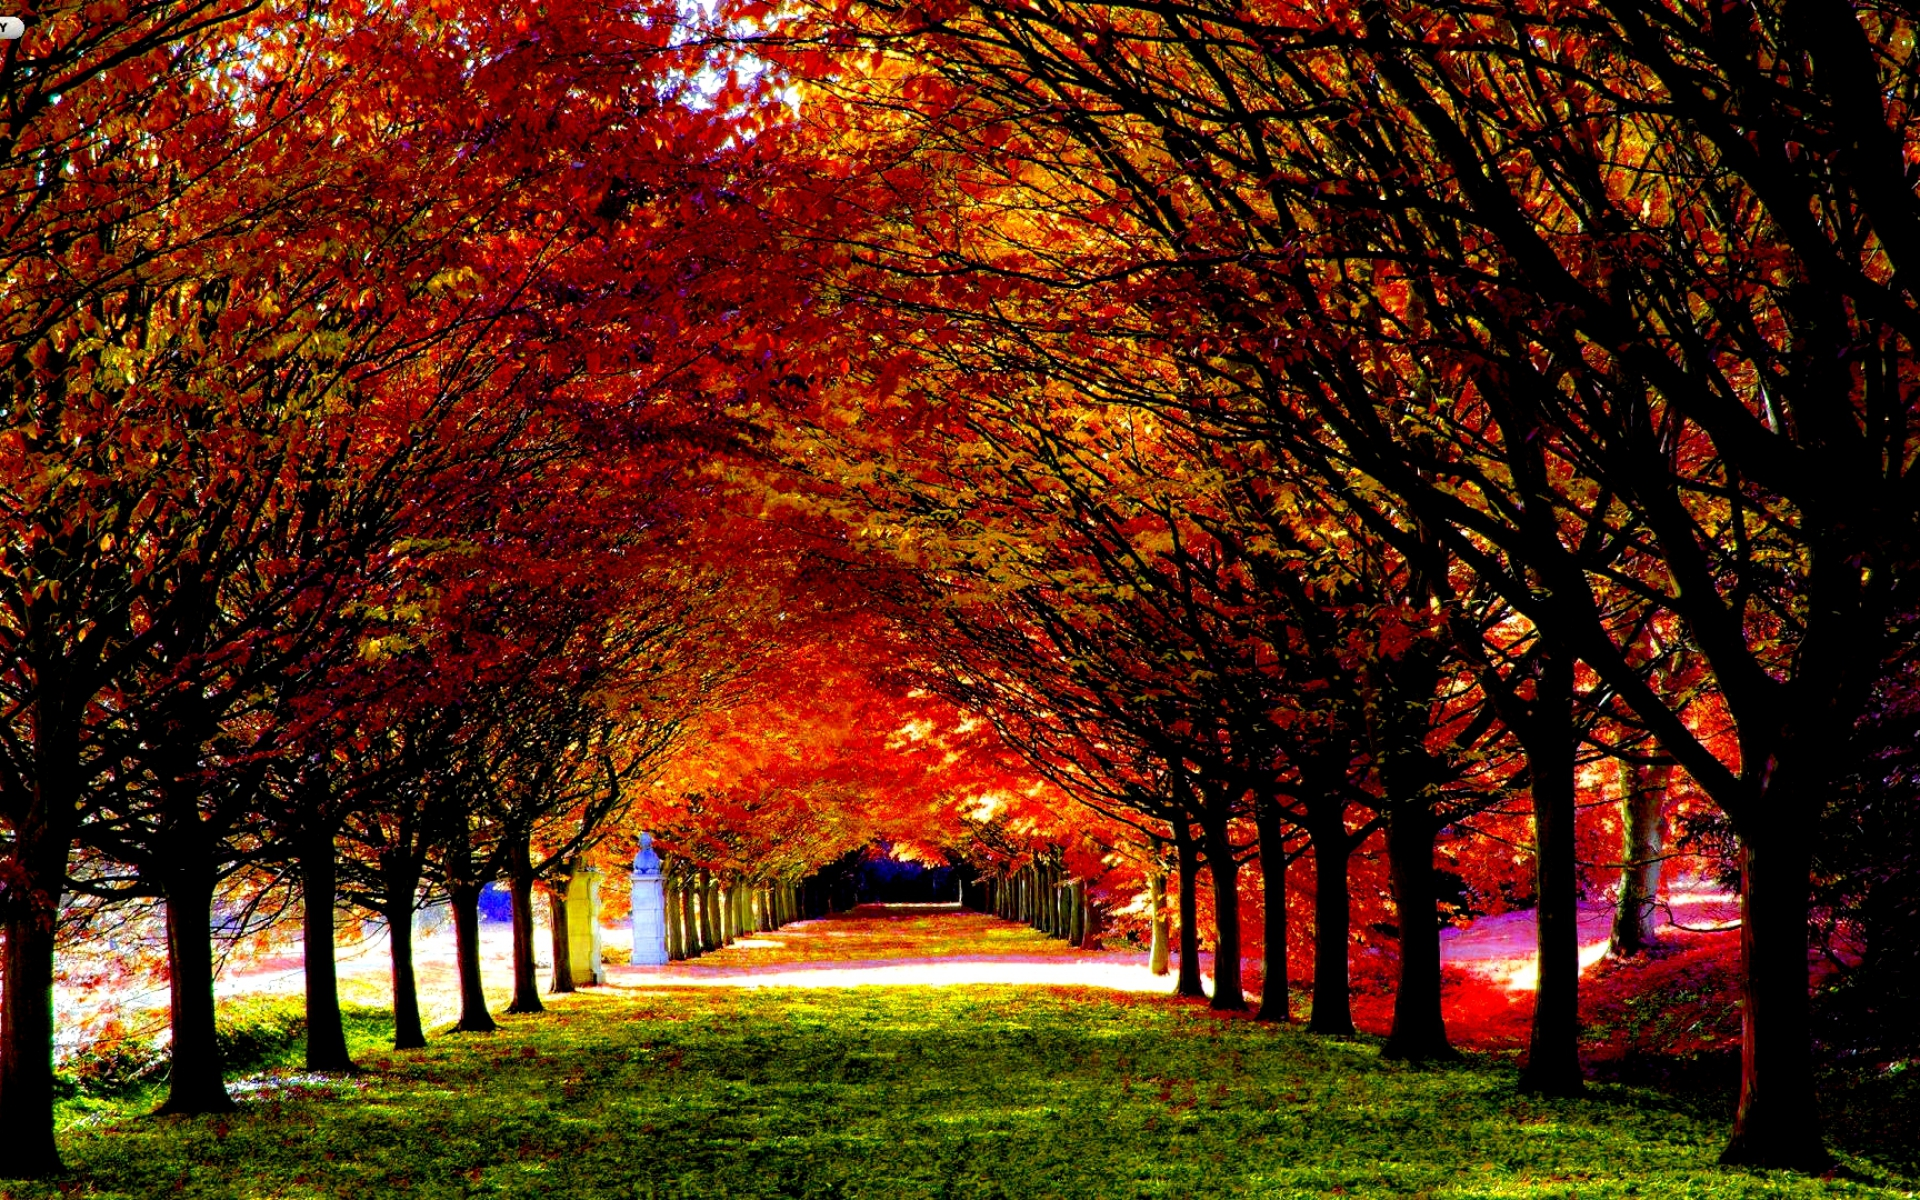 Autumn - Leaf carpeted road